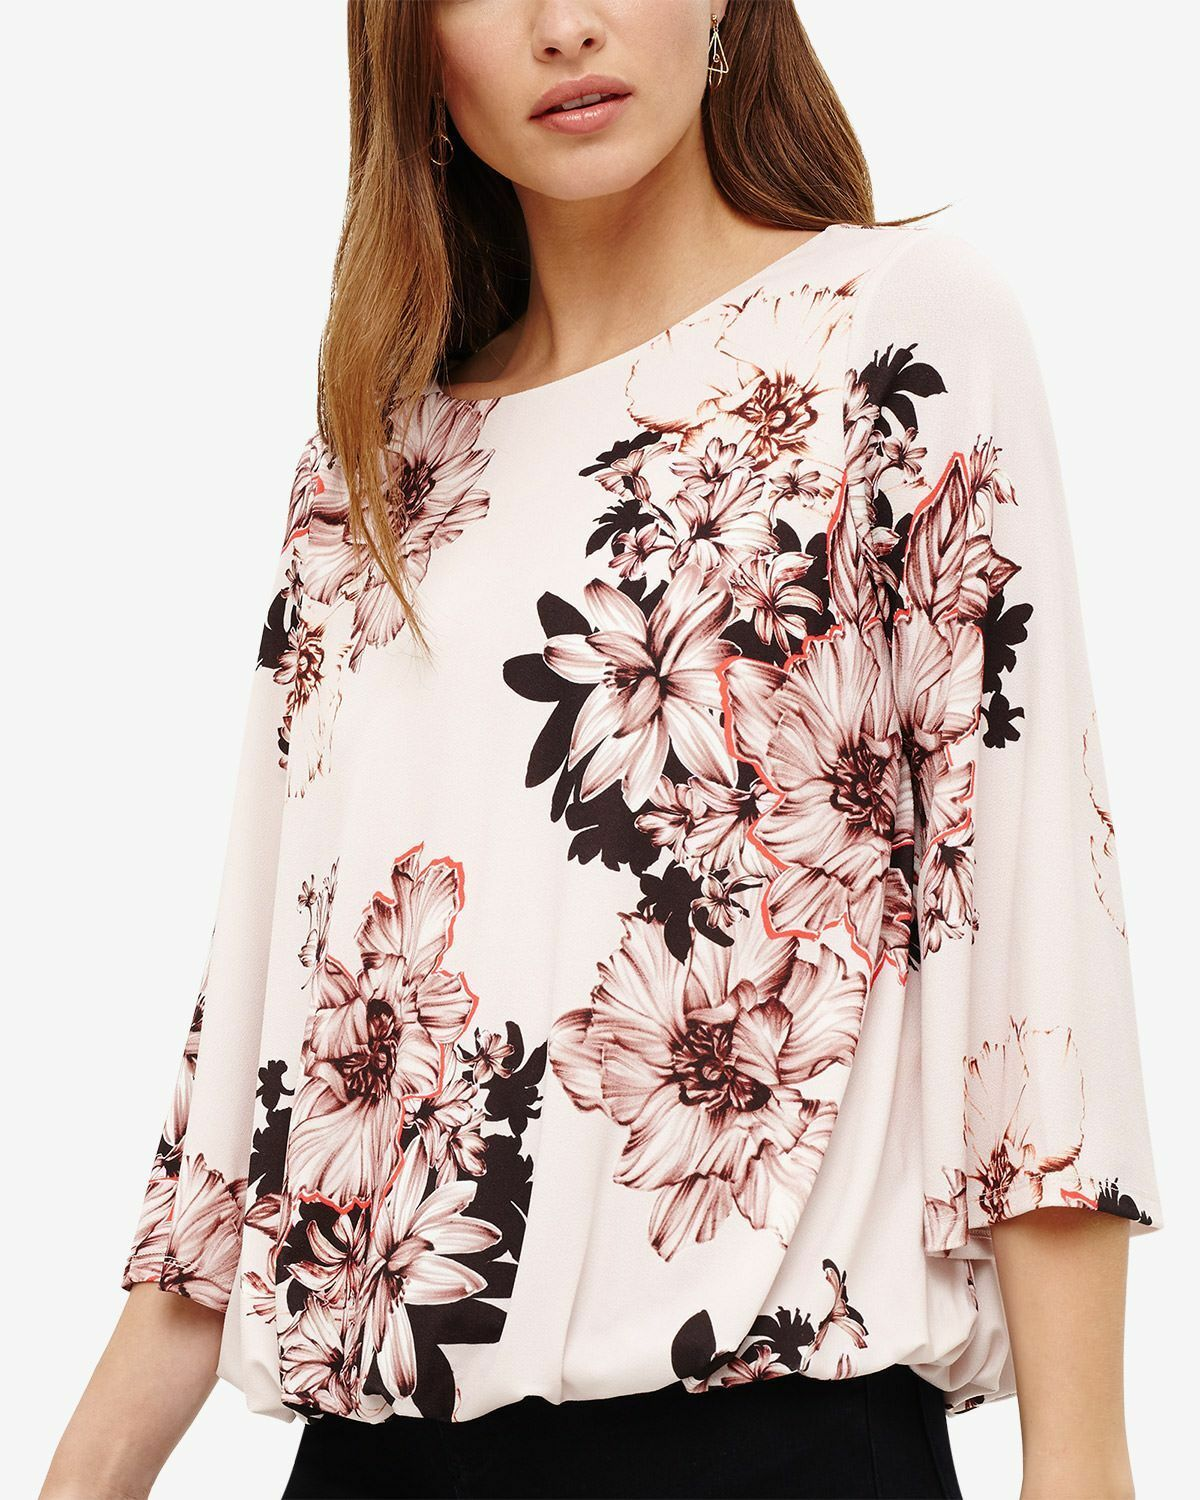 PHASE EIGHT WOMENS 'THEA' PINK FLORAL PRINT TOP -